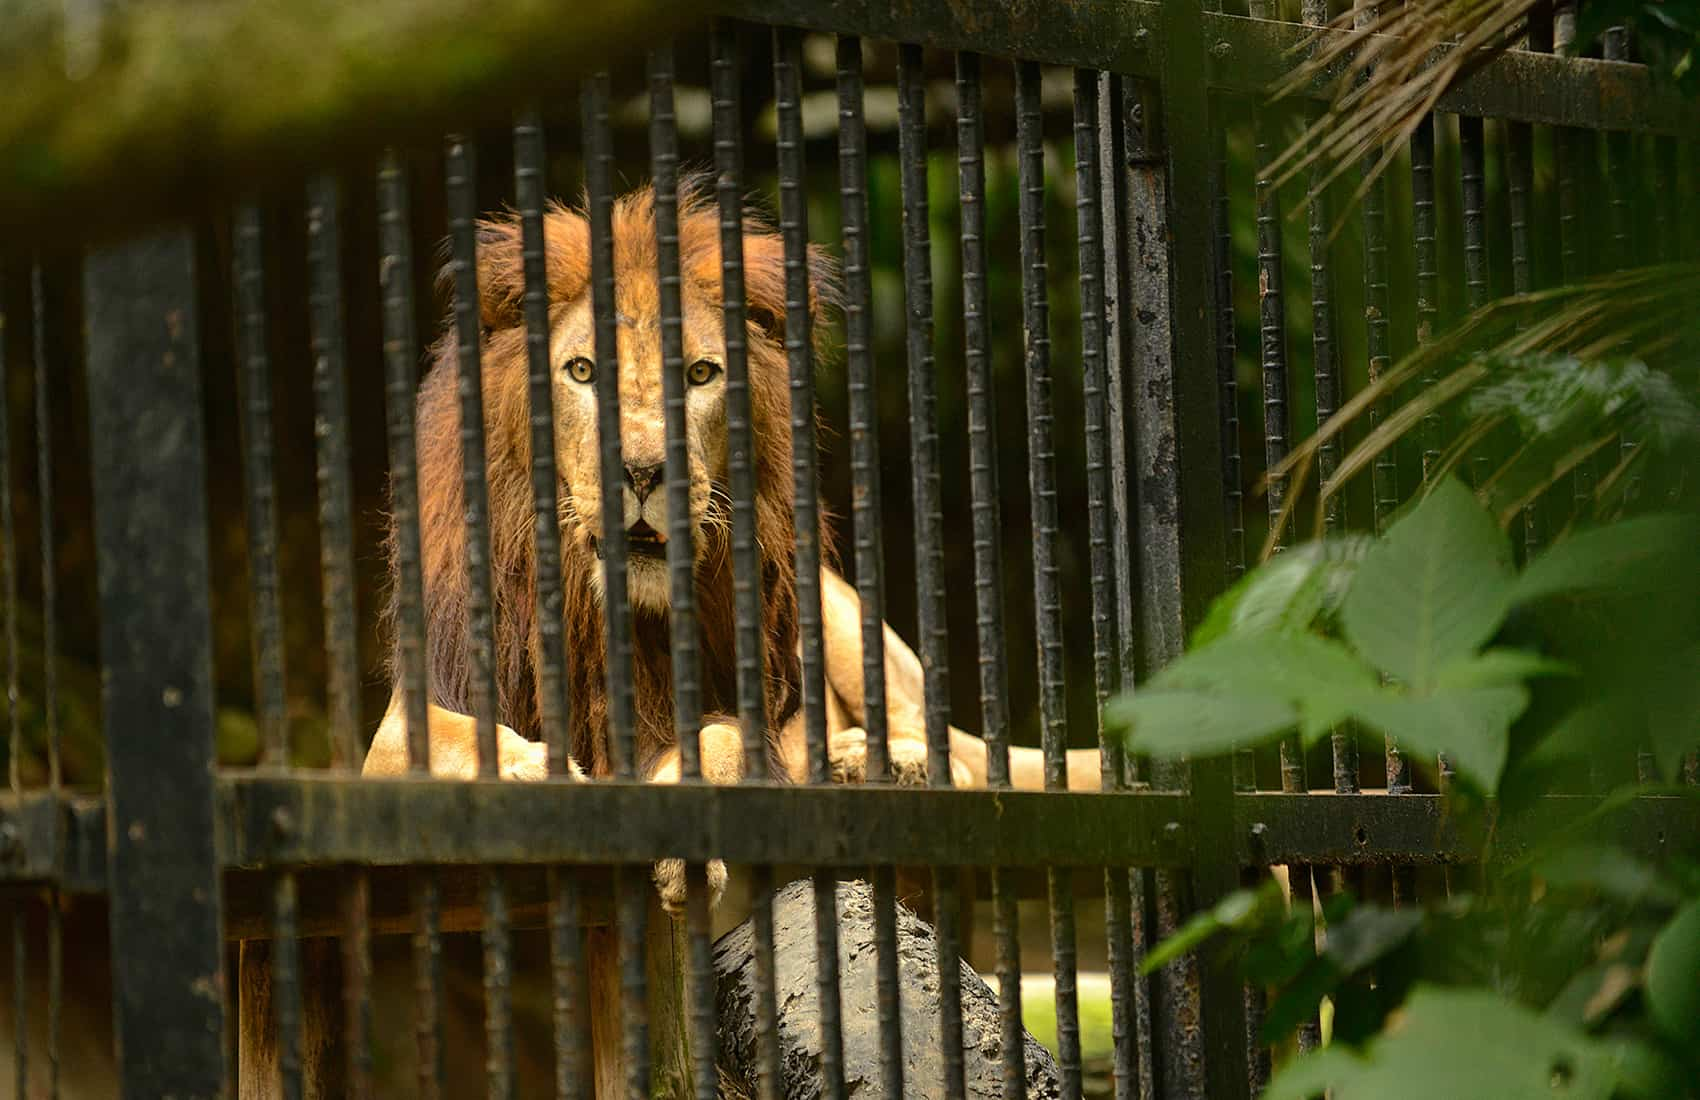 Kivu the lion was born in captivity. He lives at the Simón Bolívar Zoo in San José.